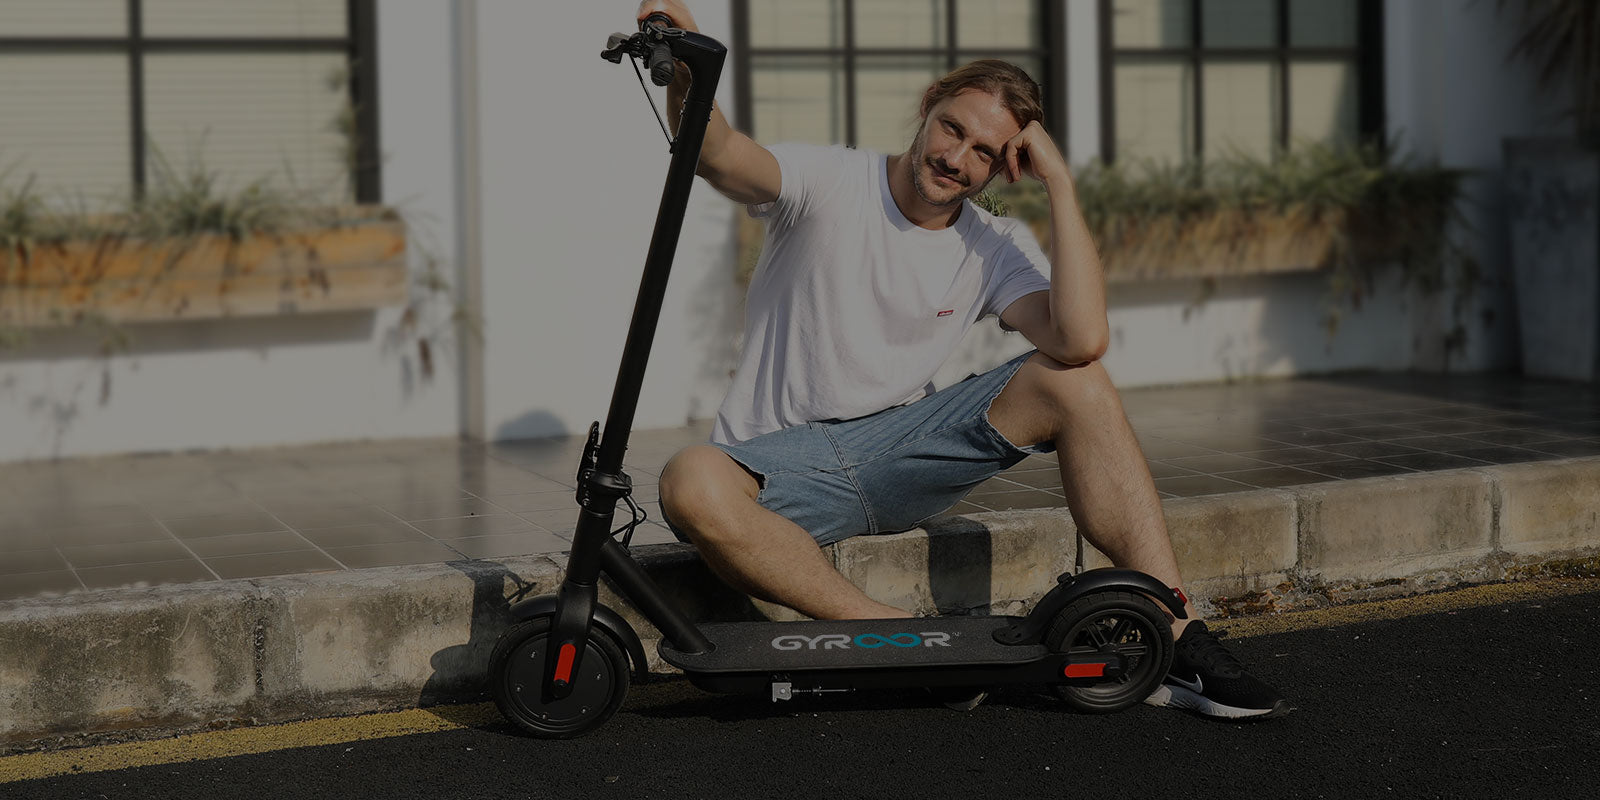 Gyroor scooter